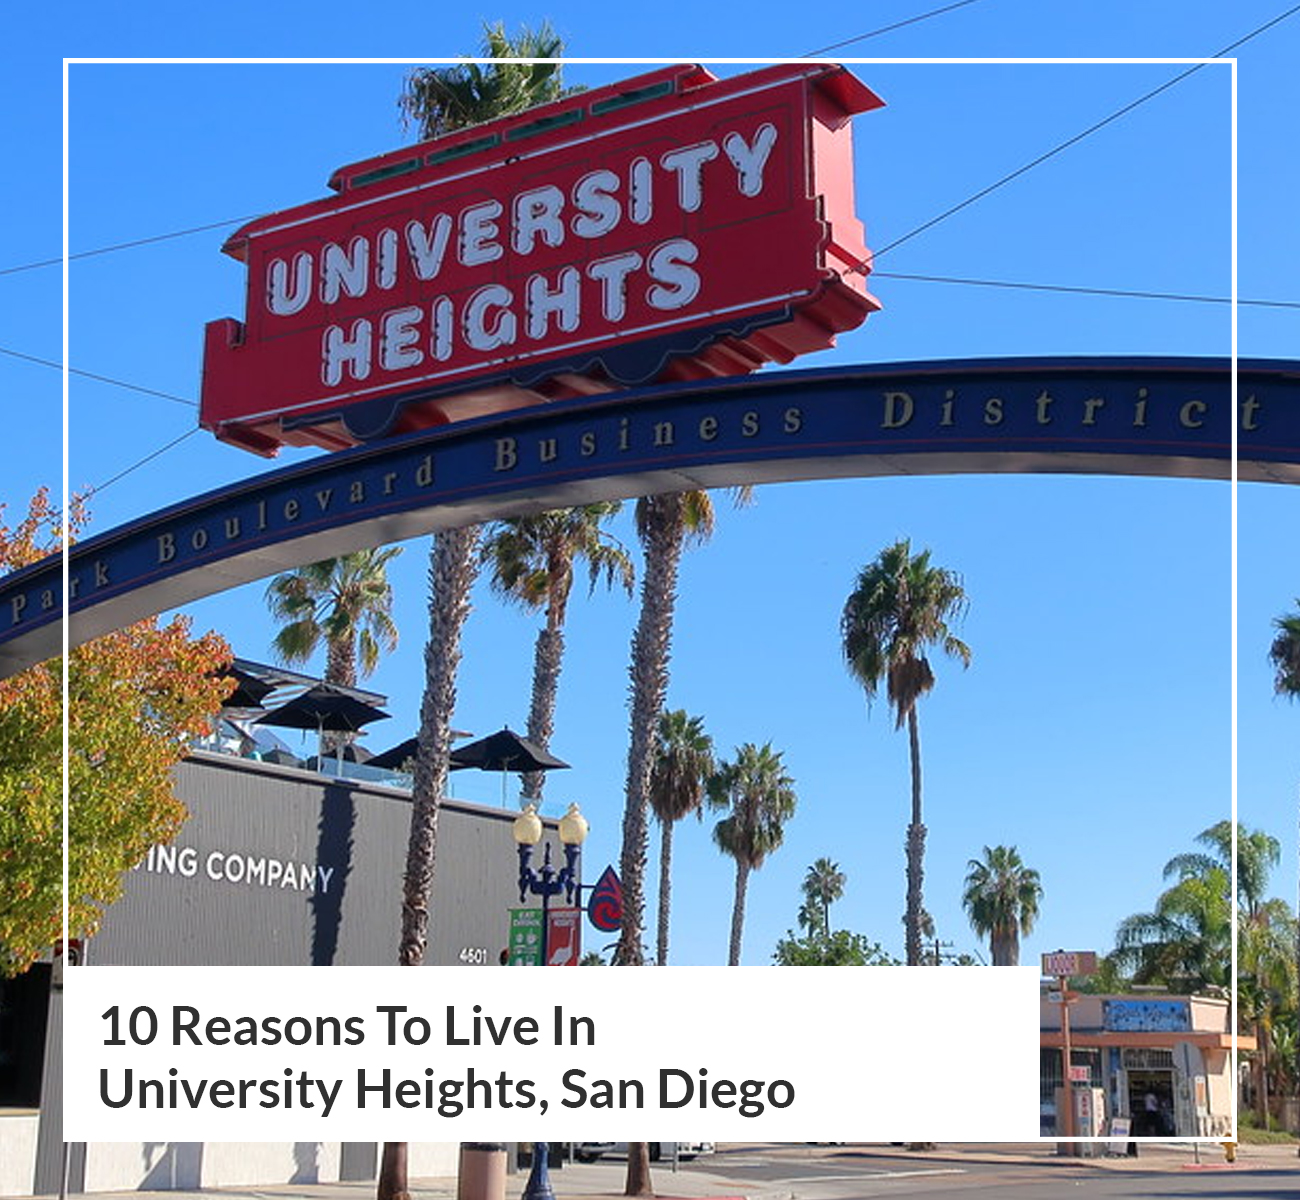 Moving to University Heights